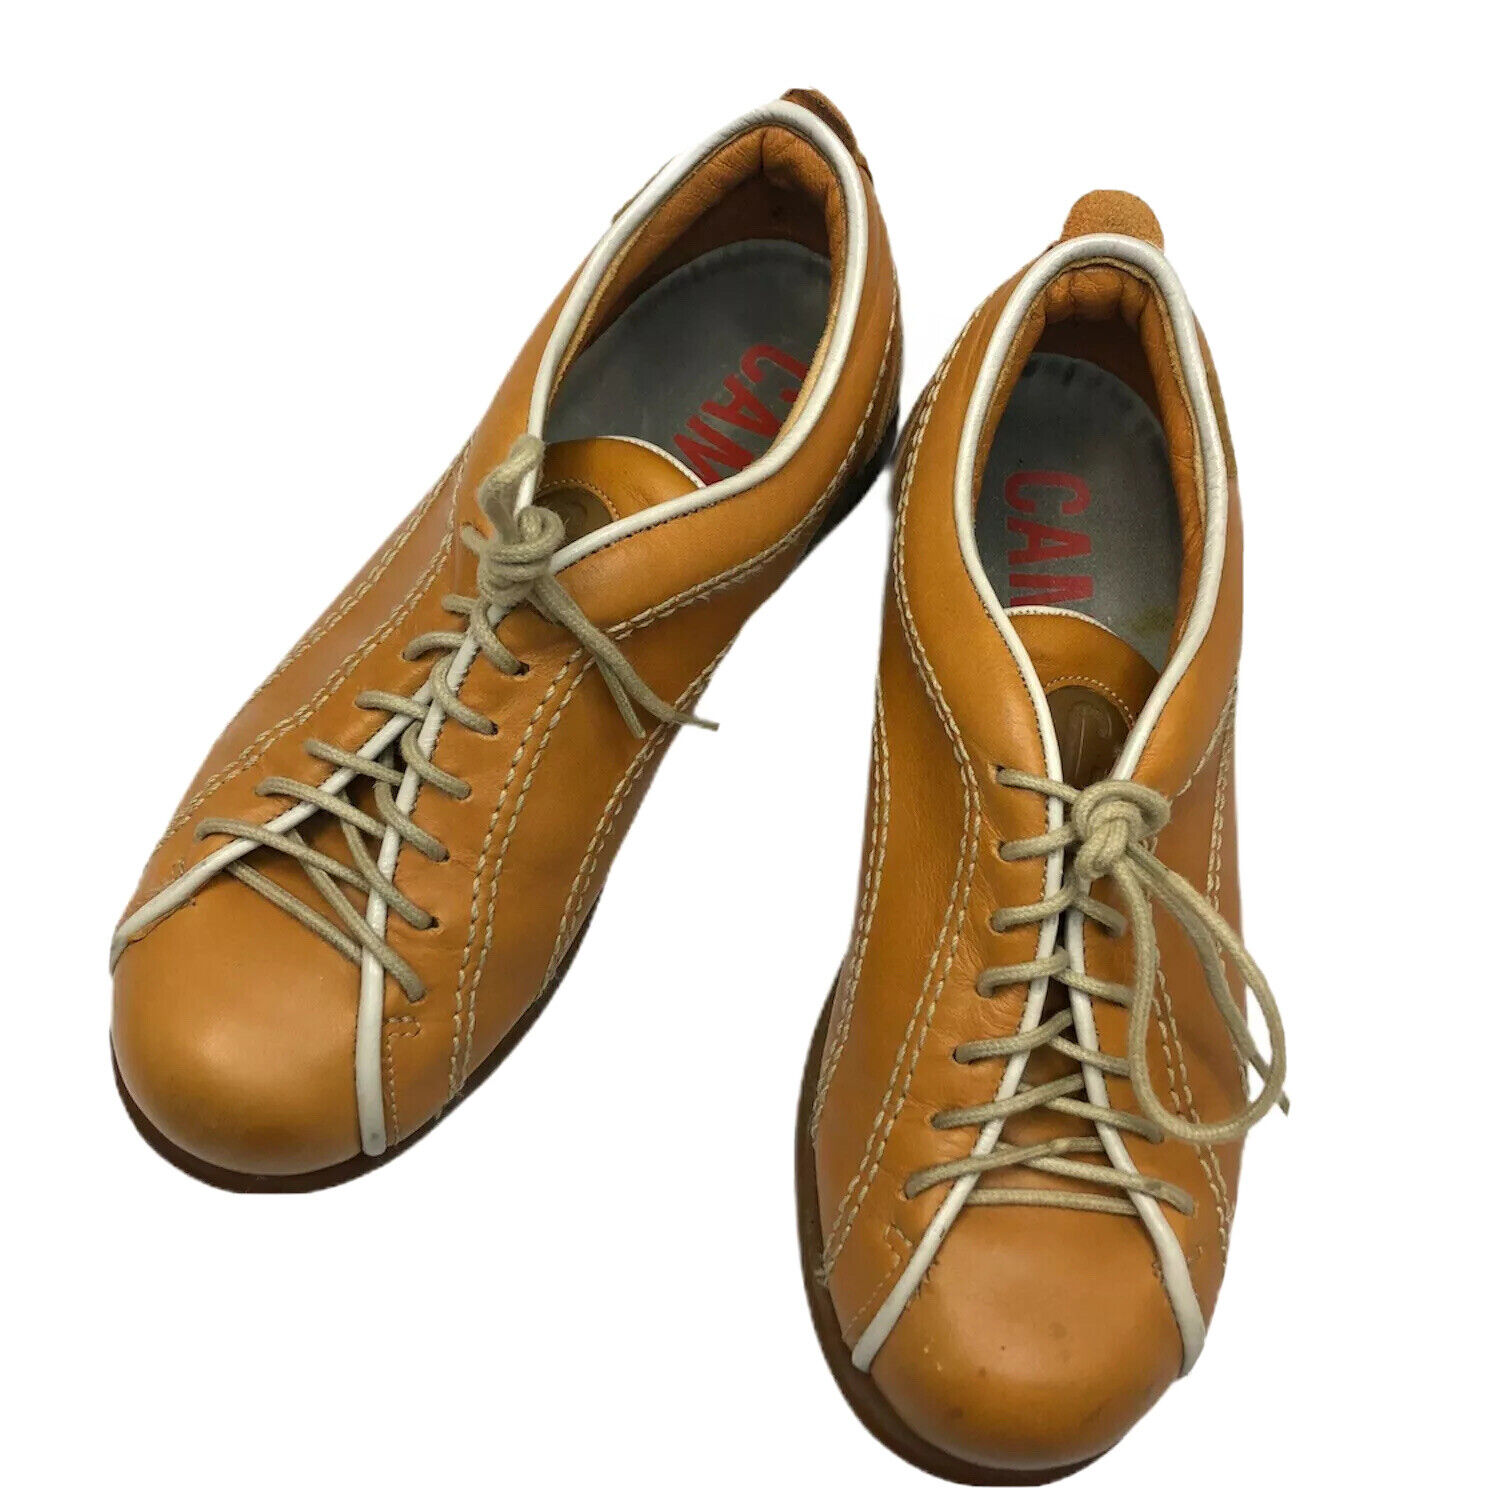 CAMPER Pelotas Unisex Brown Tan Leather Suede Sneaker Lace Up Bowling